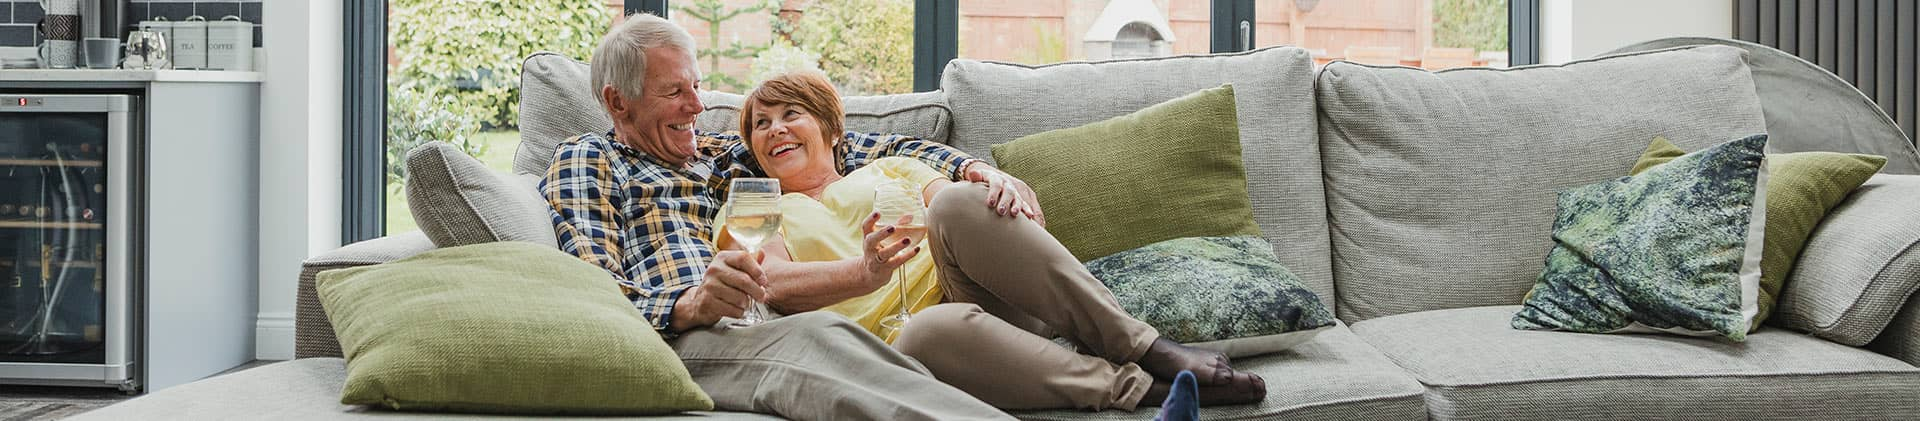 retired couple relaxing on the couch together